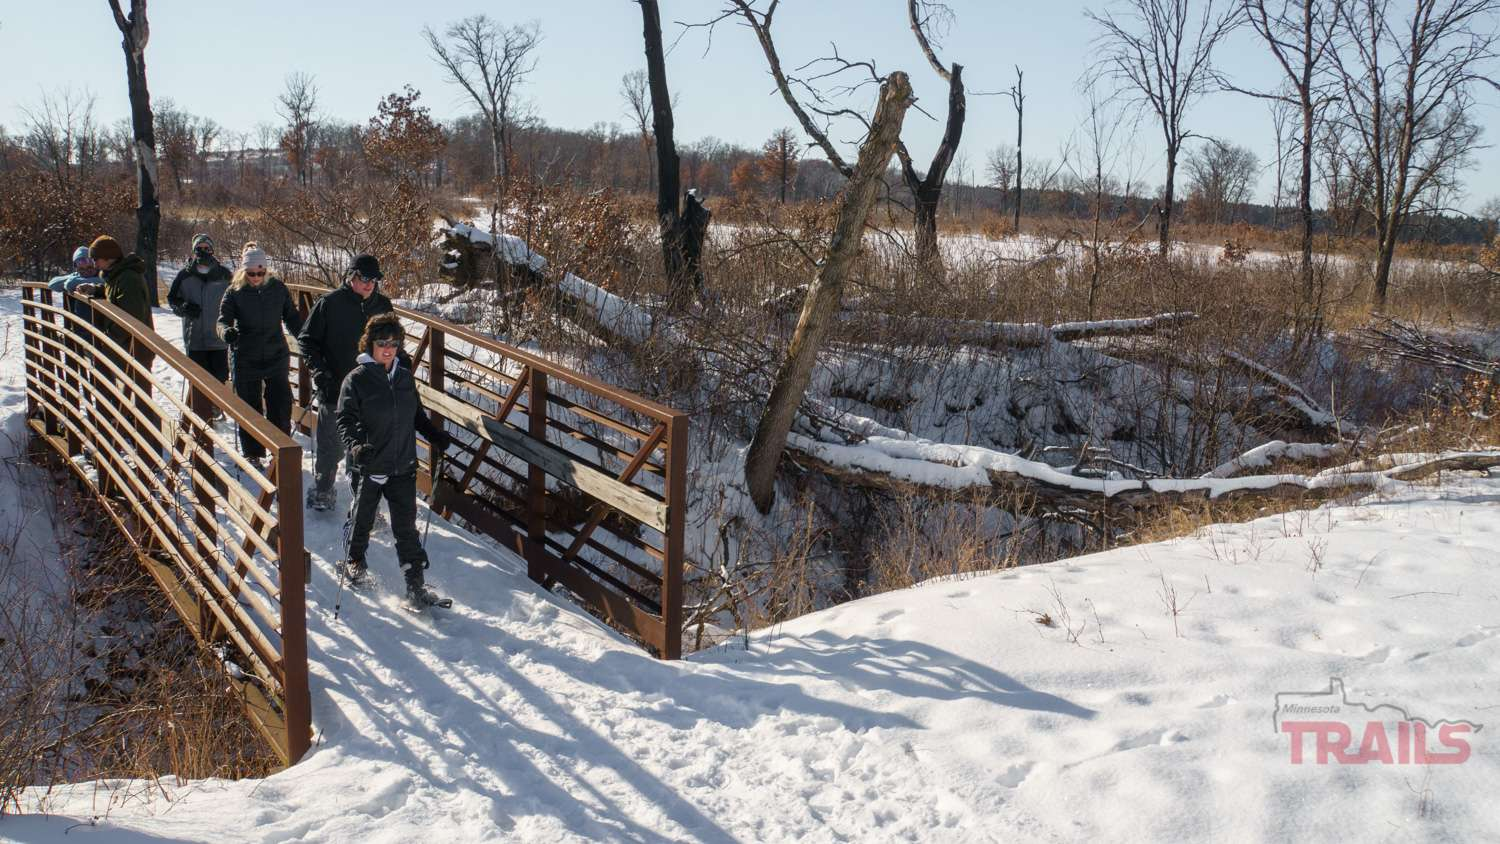 A group of six hikers on a bridge in the winter